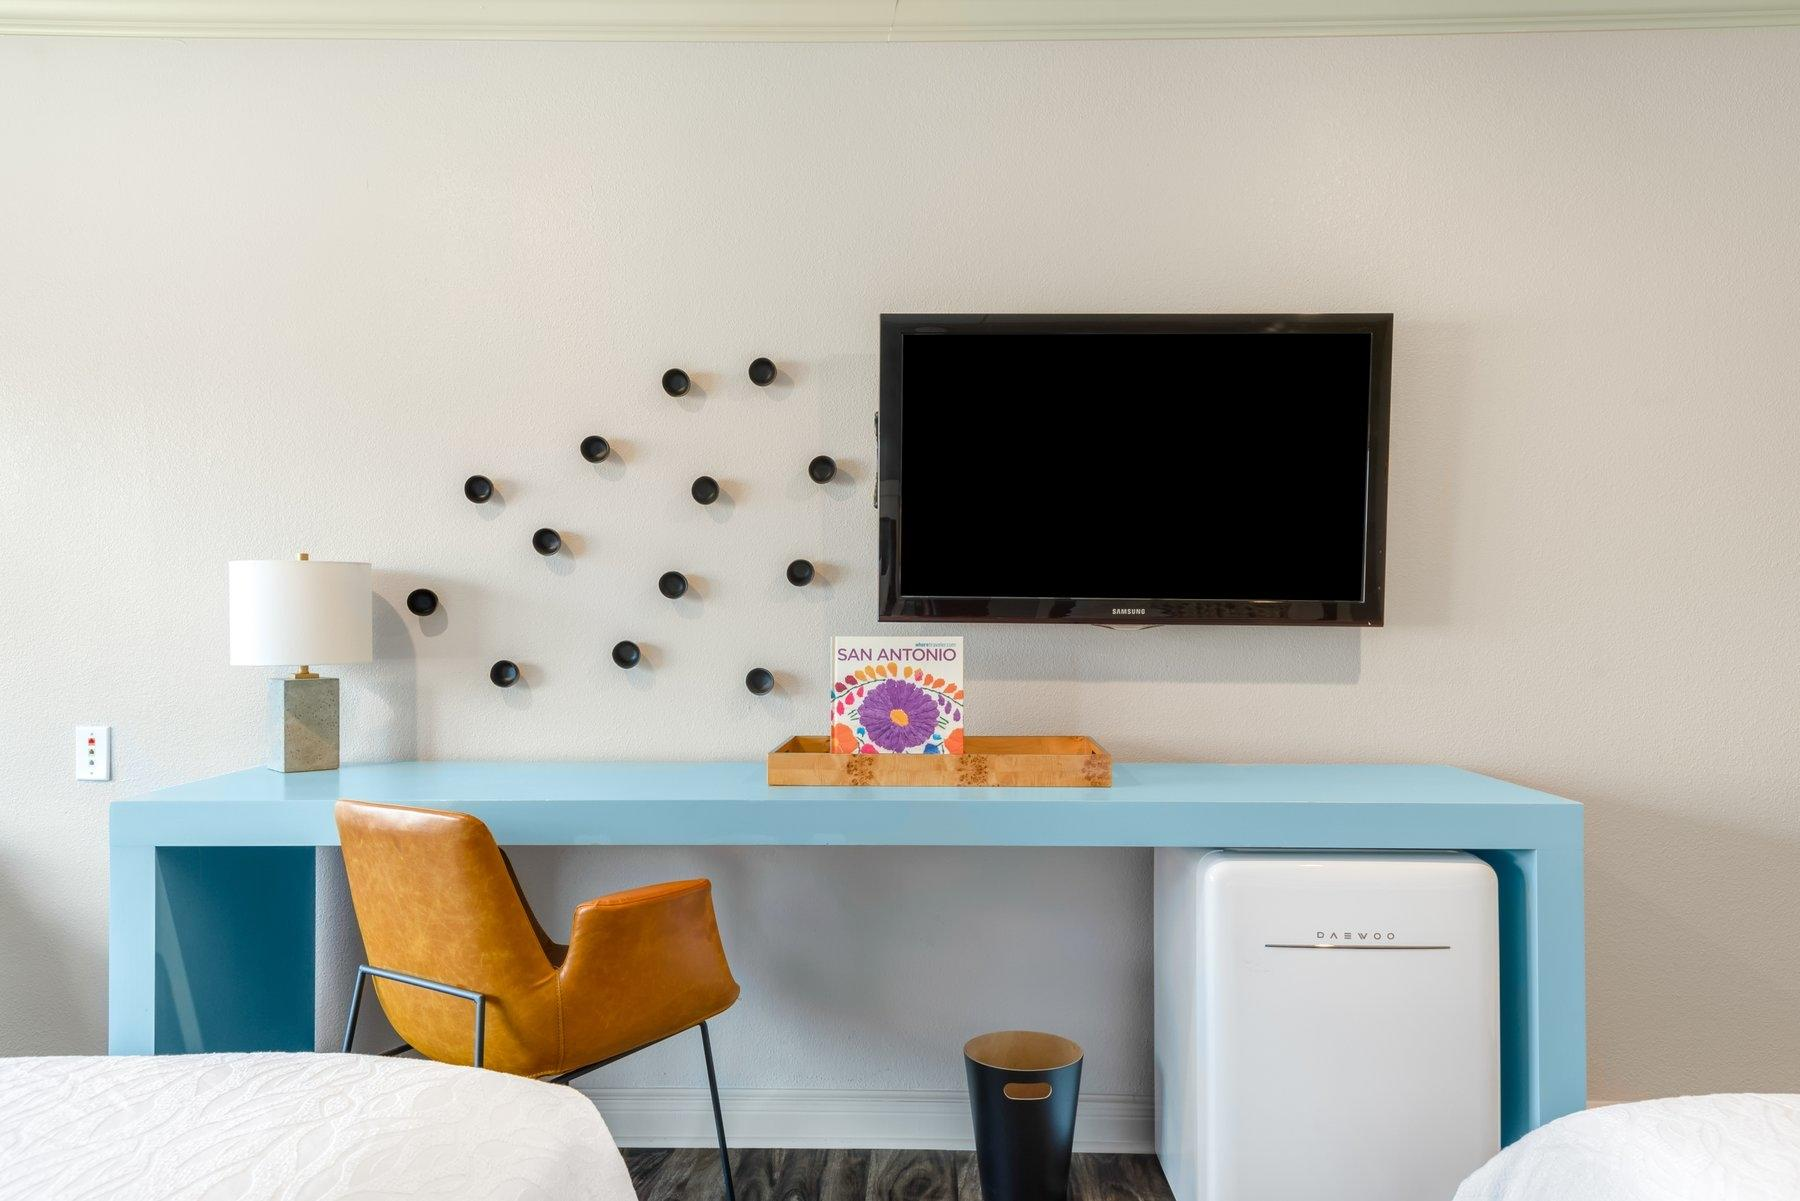 Desk and chair with TV mounted on wall